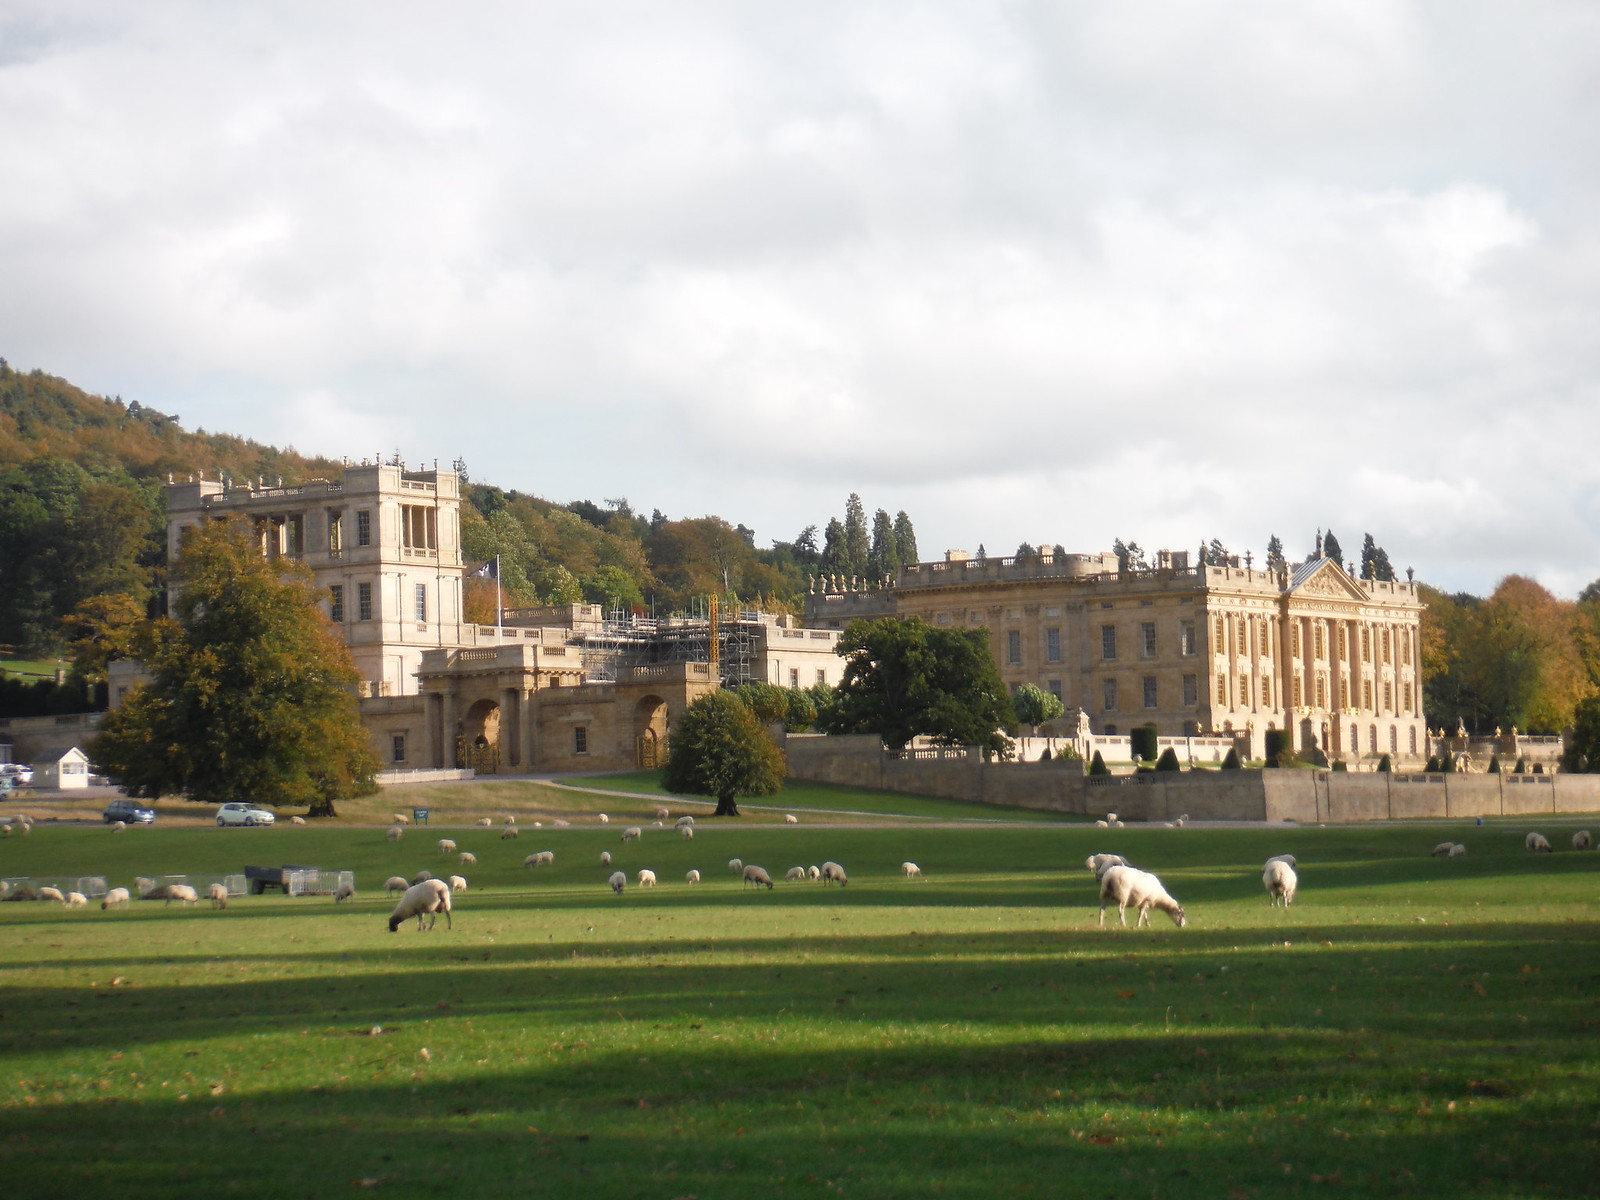 Chatsworth House SWC Walk 322 - Grindleford Circular (via Chatsworth House)